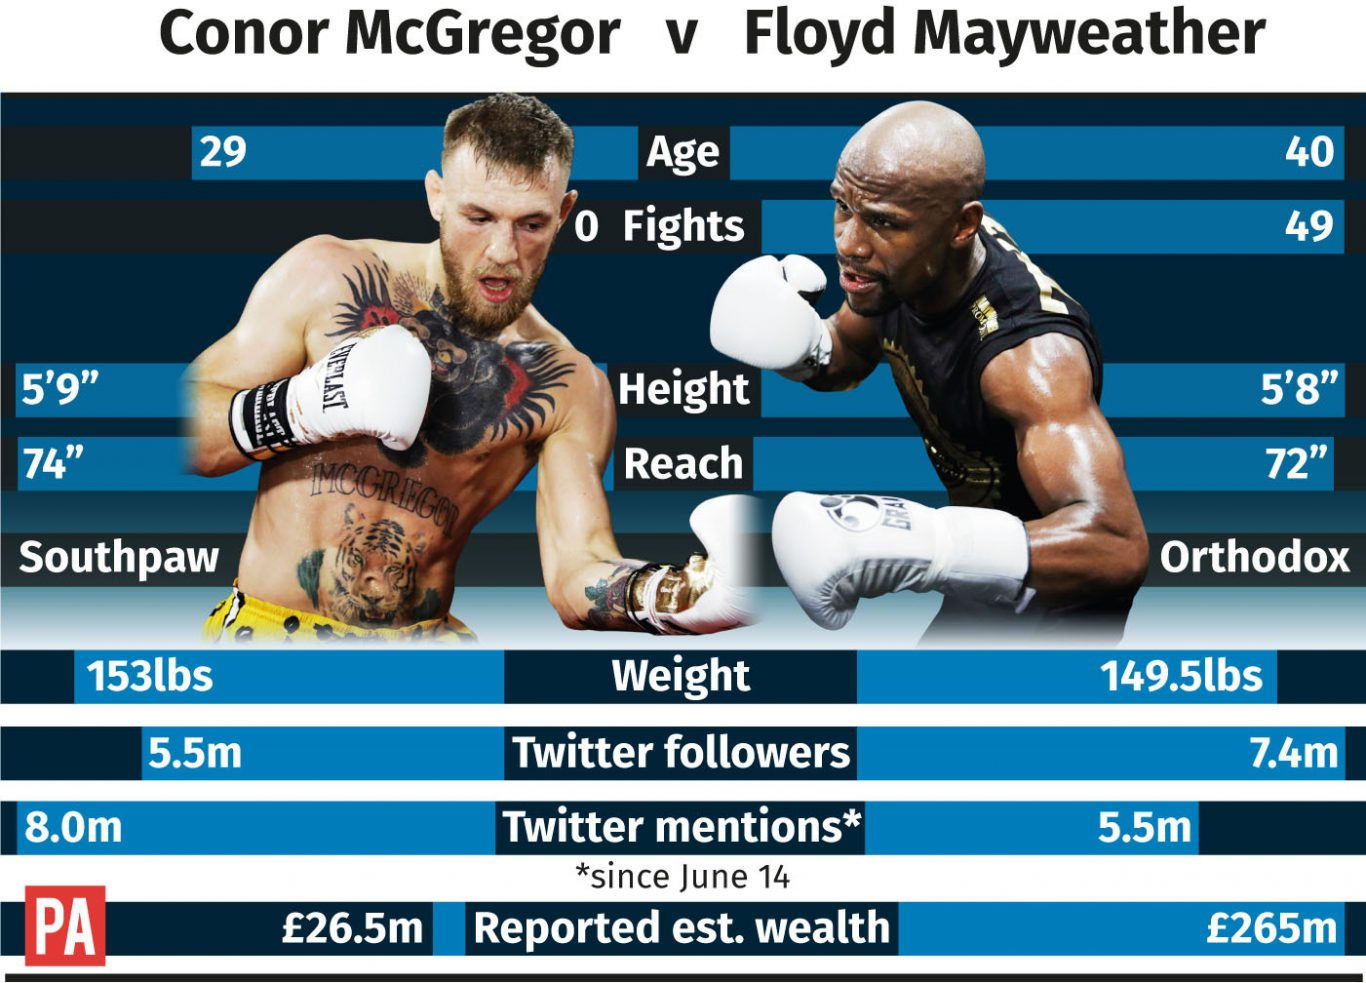 tale of the tape for Conor McGregor v Floyd Mayweather